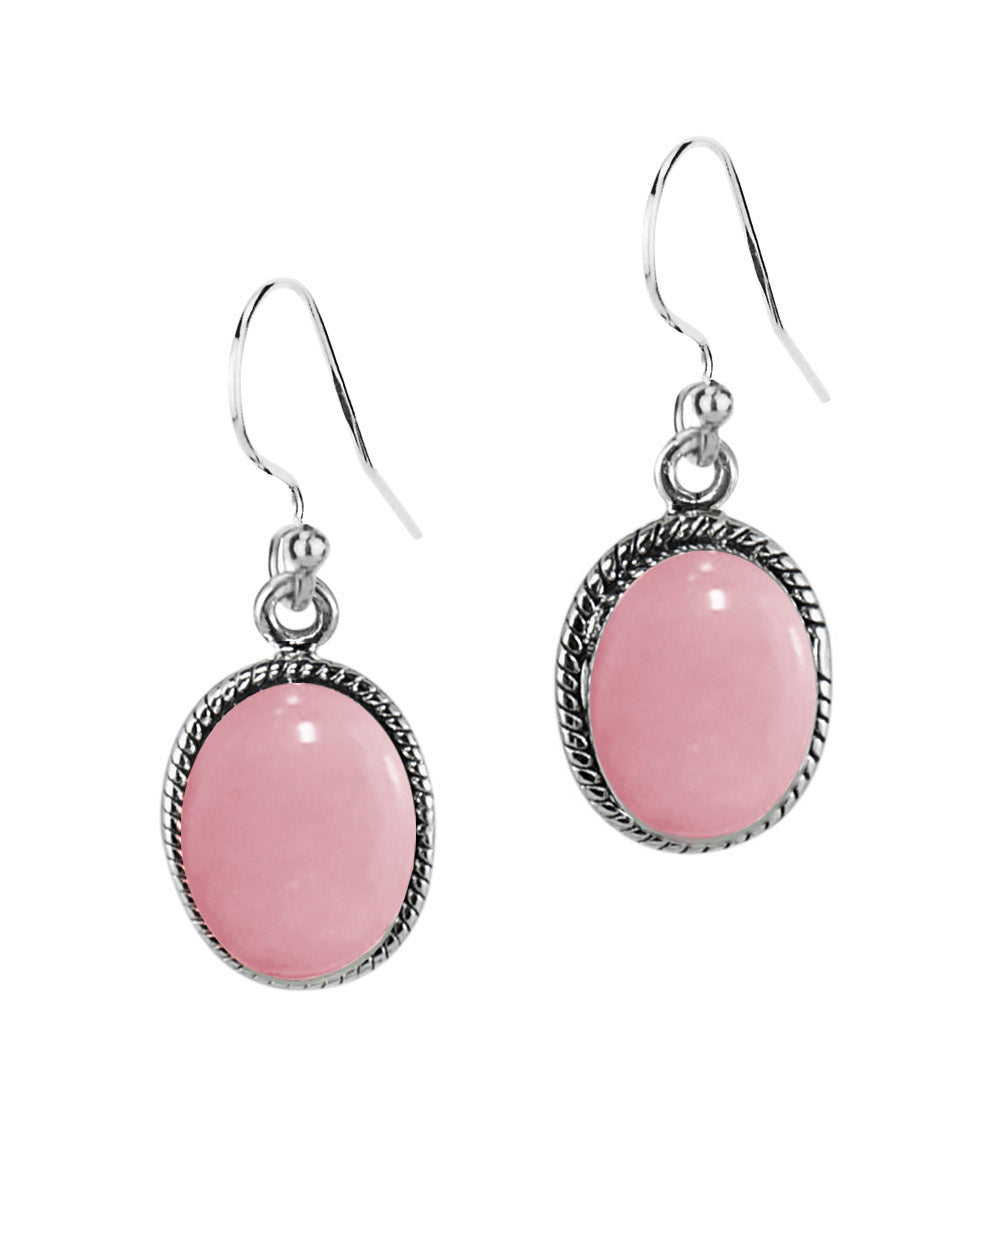 Oval Natural Pink Opal Sterling Silver Statement Earrings